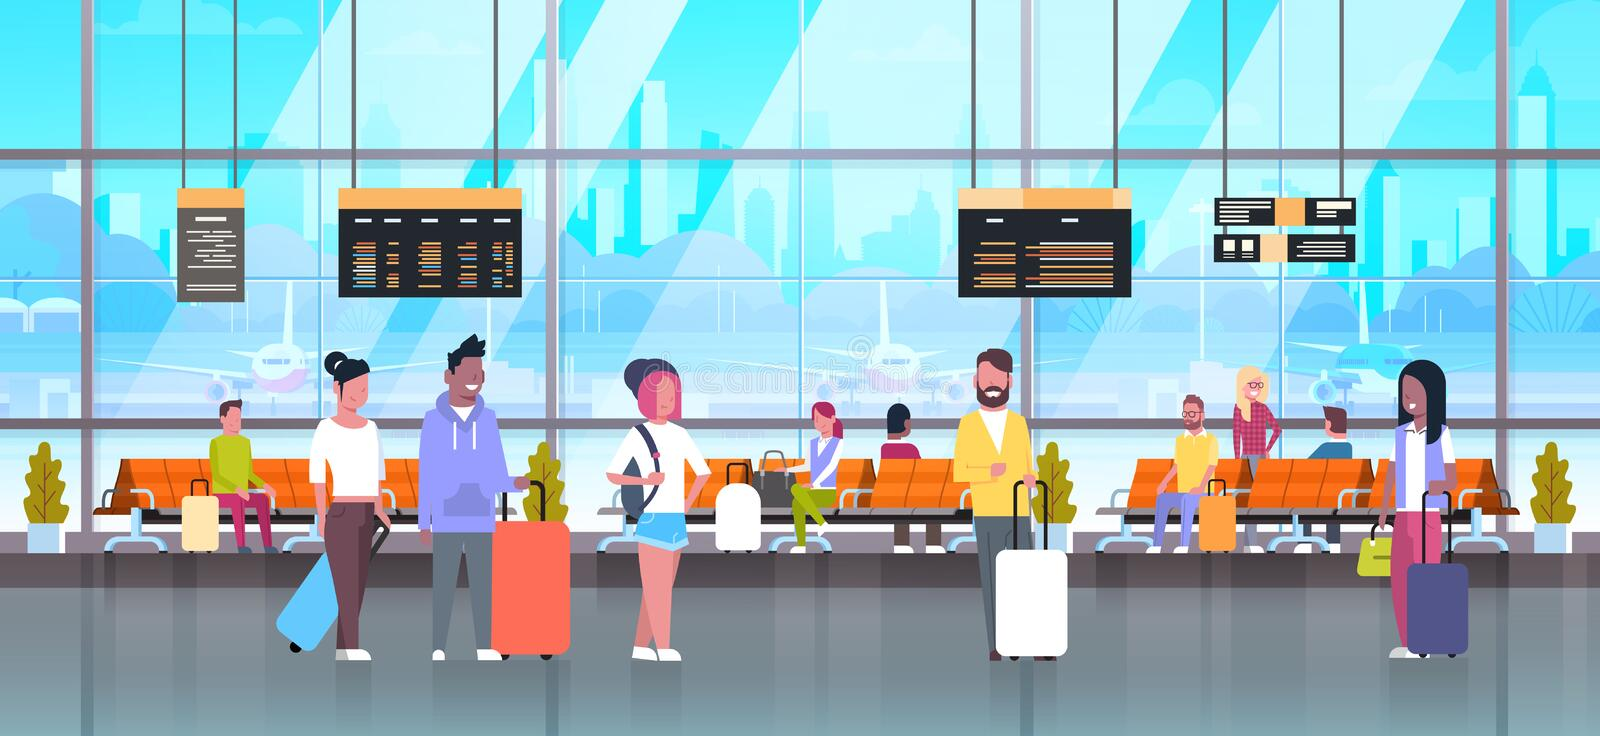 People In Airport Travelers With Baggage At Waiting Hall Or Departure Lounge Terminal Check In Interior. People In Airport Travelers Baggage At Waiting Hall Or stock illustration